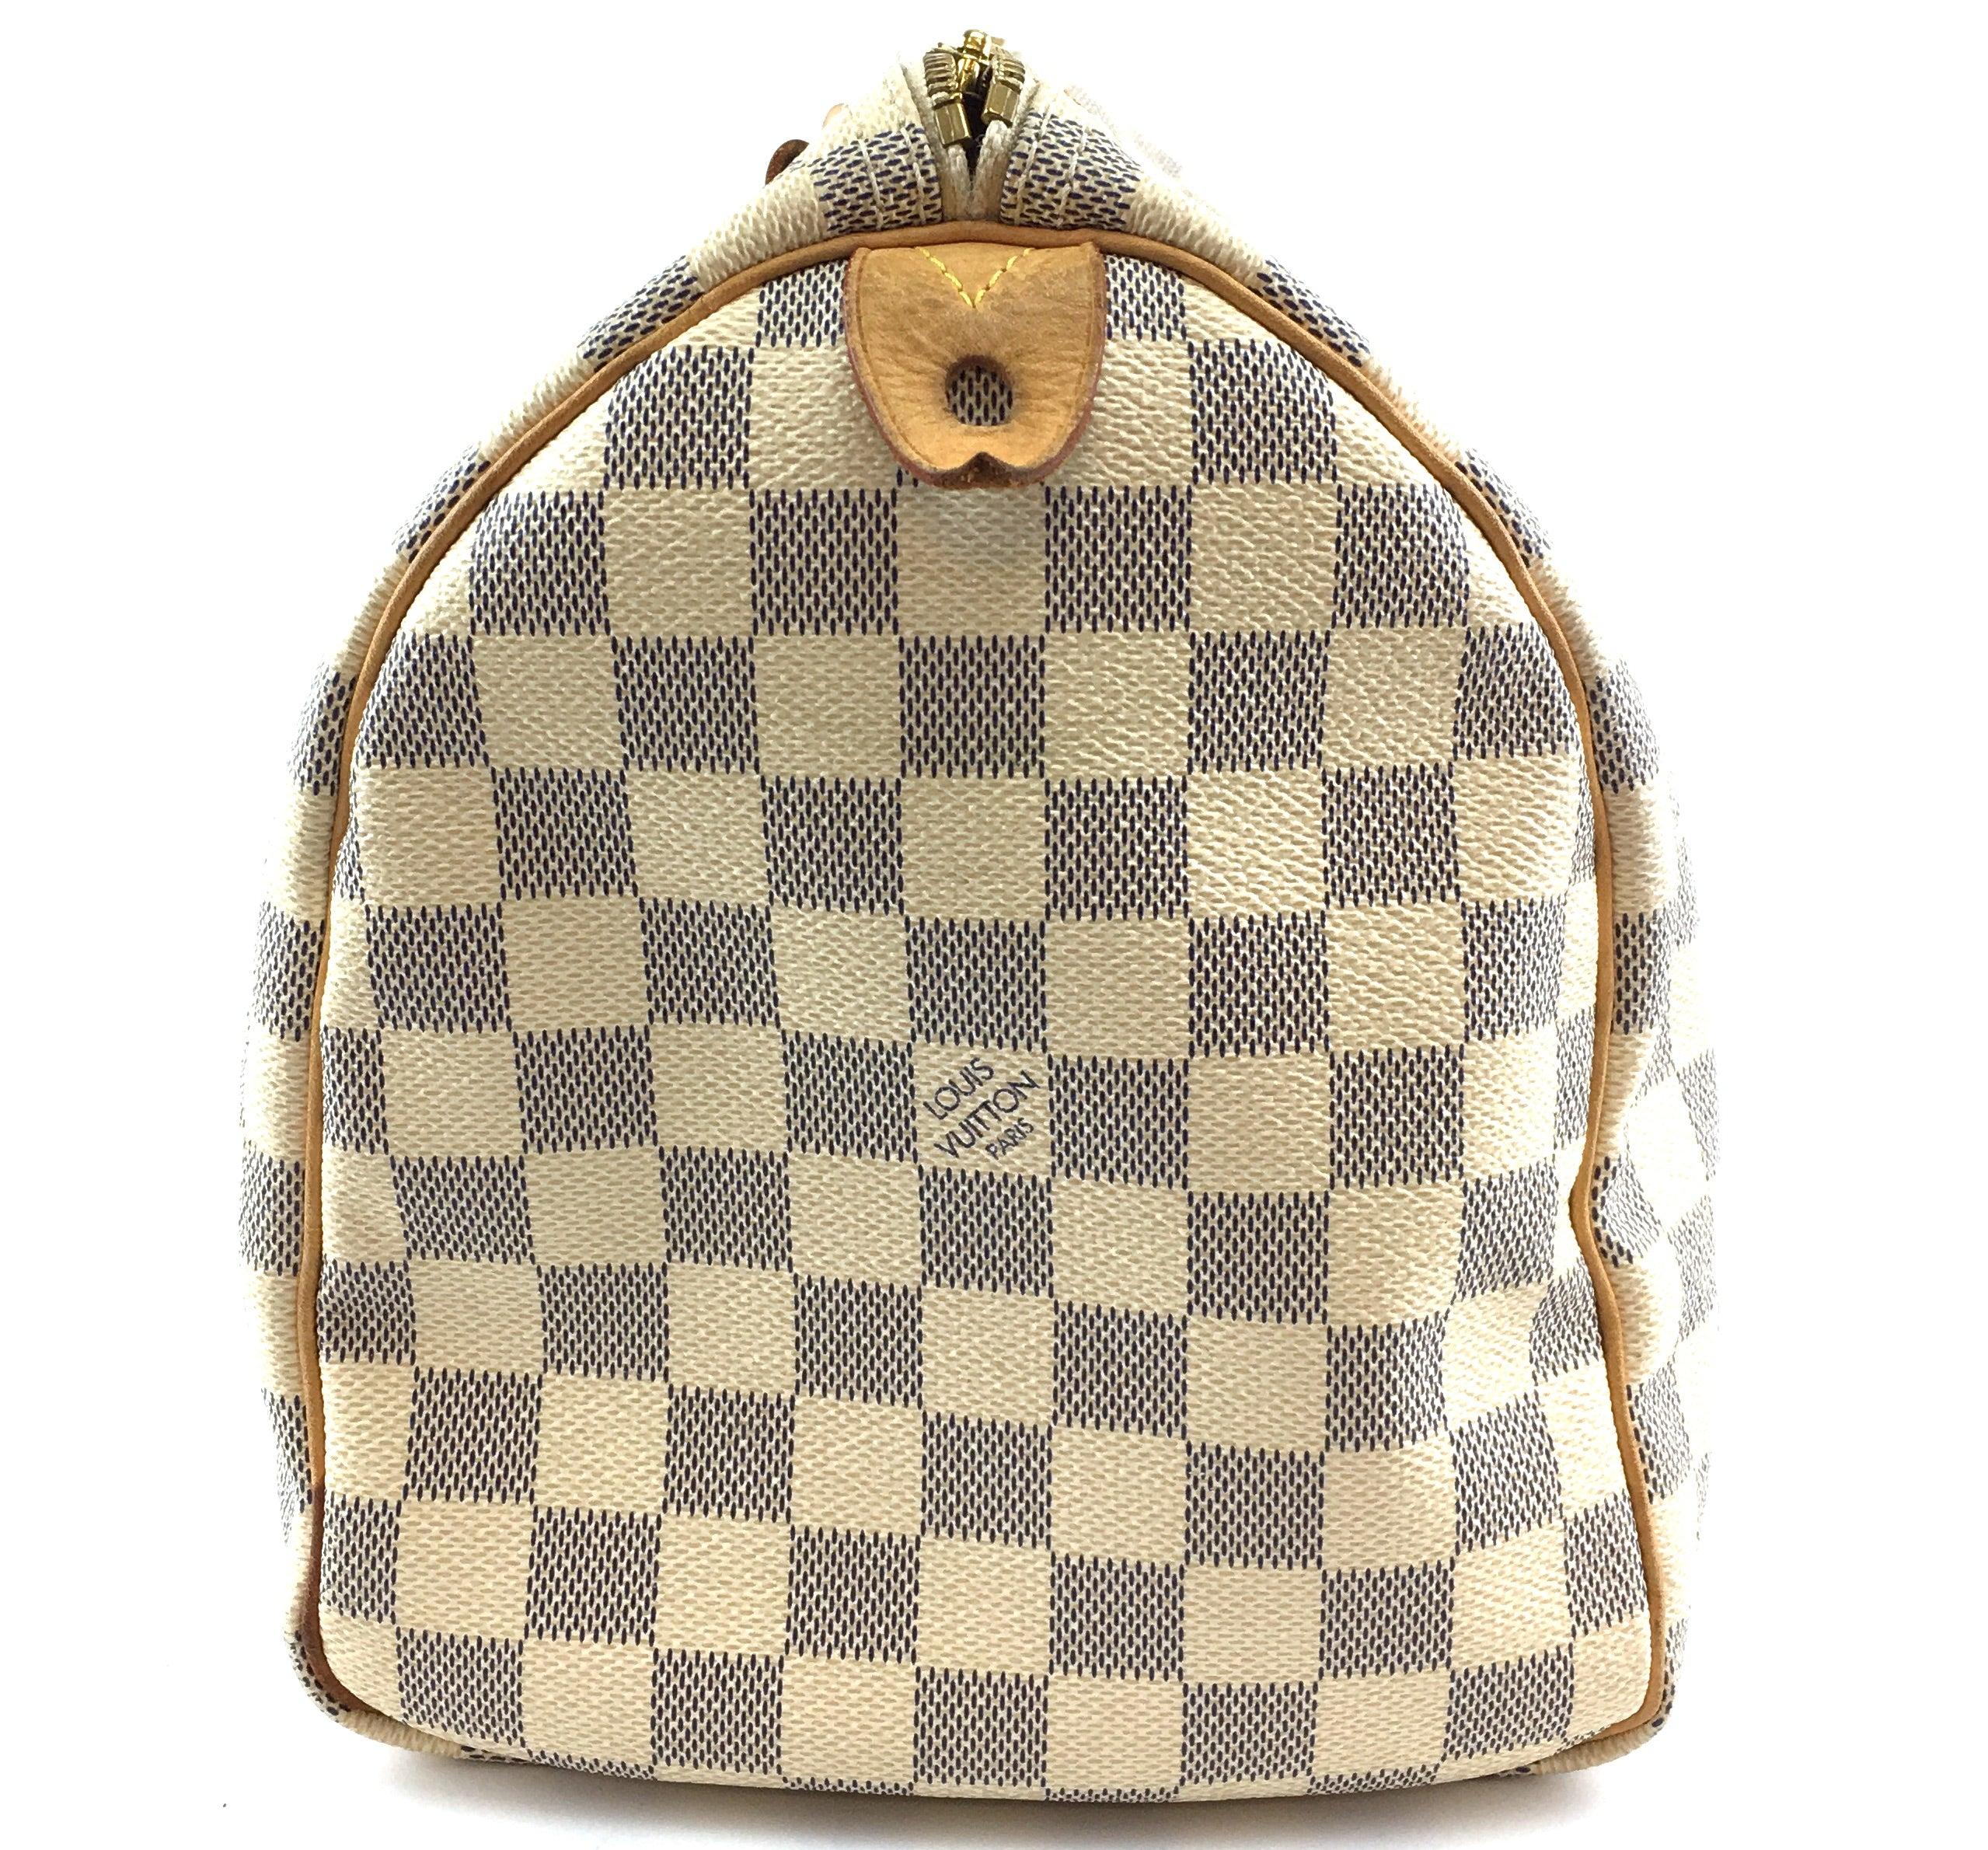 Louis Vuitton Speedy 25 Damier Azur Canvas